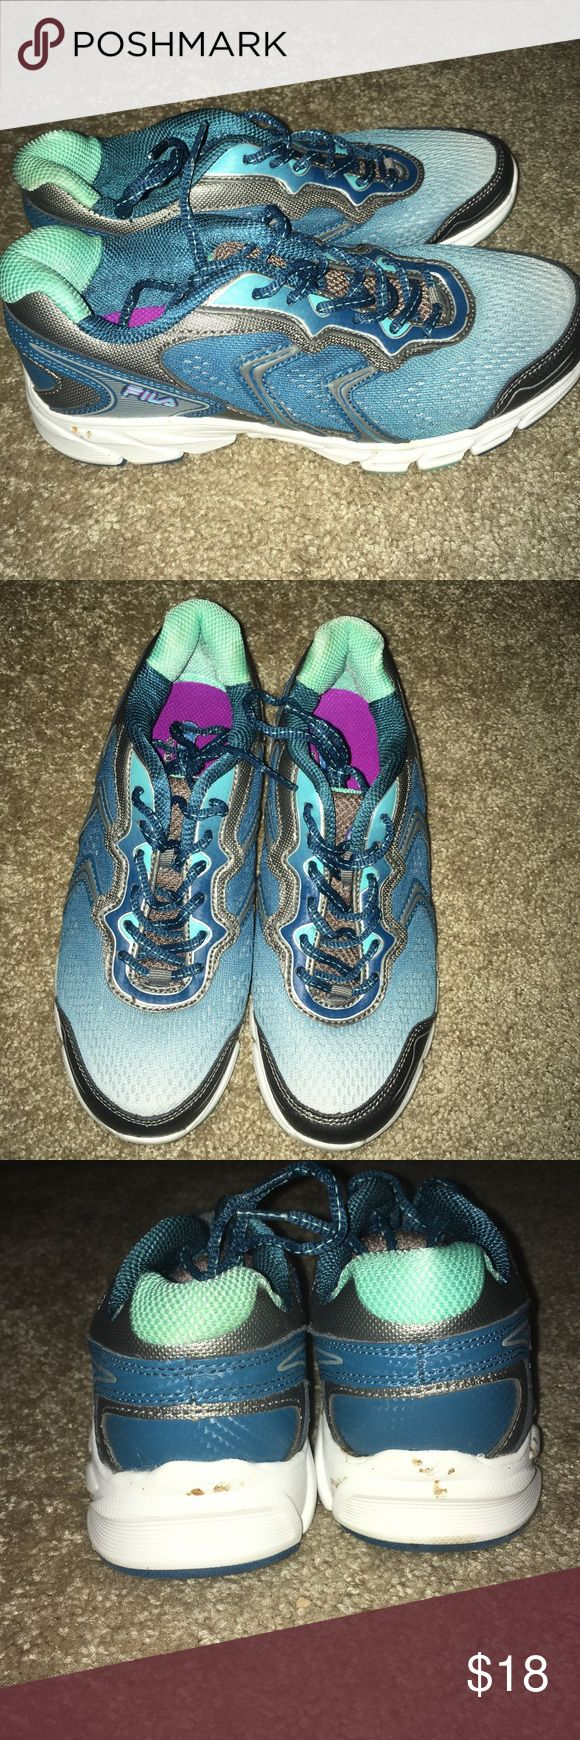 FILA running shoes Blue & teal FILA running shoes. Worn twice. Good condition. Size 8. 100% authentic. Offers welcomed :) Fila Shoes Sneakers